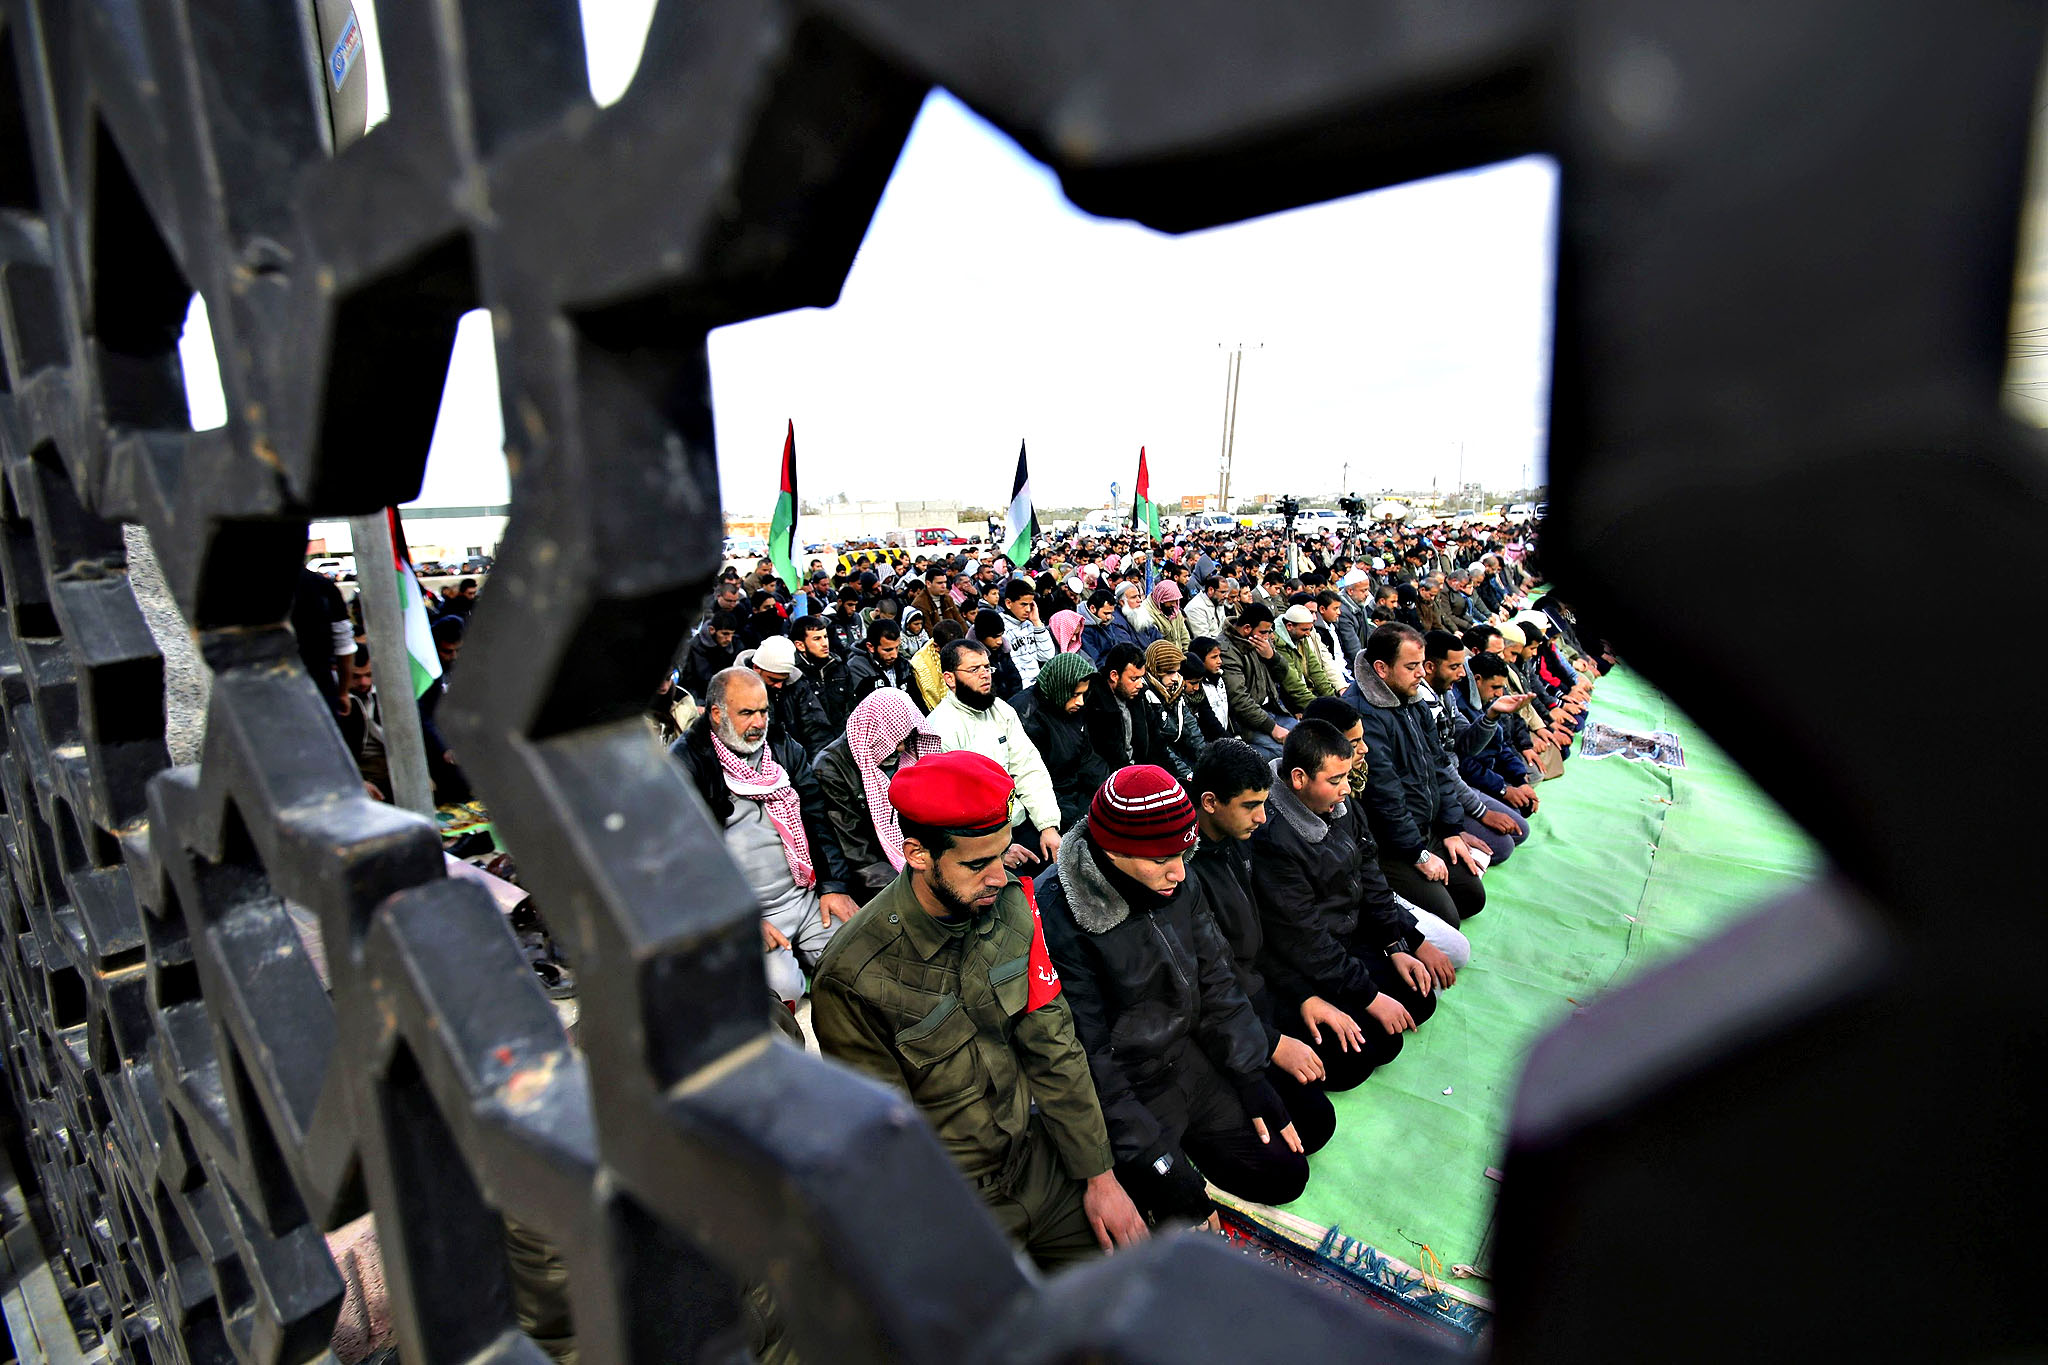 Palestinians are pictured through a gate as they perform Friday prayers at the Rafah border crossing between Egypt and southern Gaza Strip January 16, 2015, to demand that Egyptian authorities open the crossing.  Egypt shut Rafah crossing, Gaza's main window to the outside world, over violence with Islamist militants in Egypt's adjacent Sinai region last October. Since then, it opened the crossing for a few days to allow thousands of Palestinians get in and out of Gaza Strip.